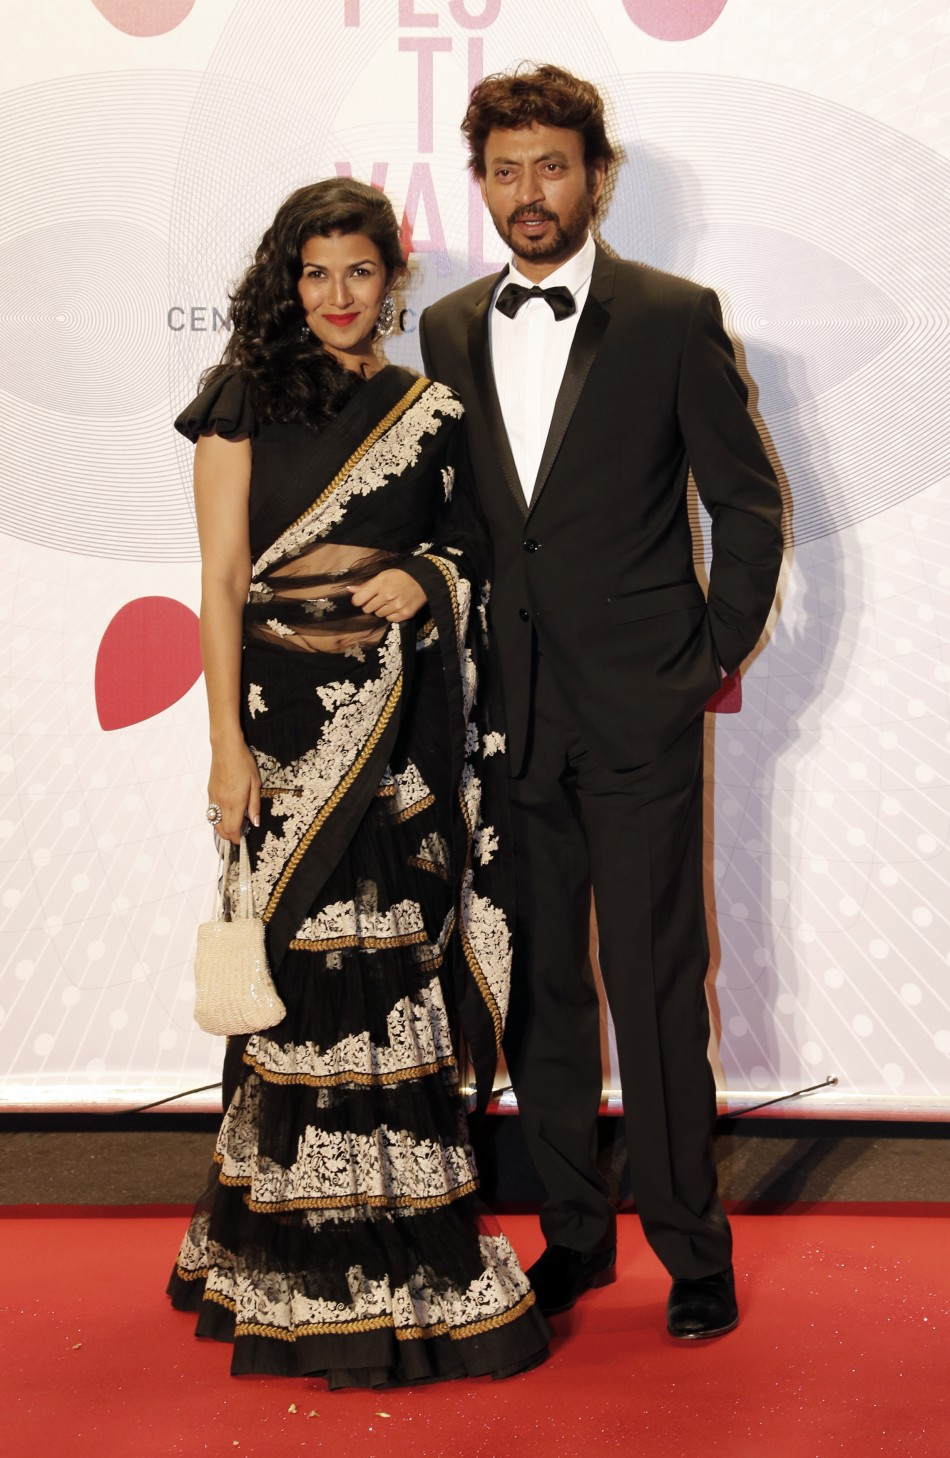 Actress Nimrit Kaur L and actor Irrfan Khan pose as they arrive at the evenings gala of the film Bombay Talkies celebrating a hundred years of Indian cinema, during the 66th Cannes Film Festival in Cannes May 19, 2013